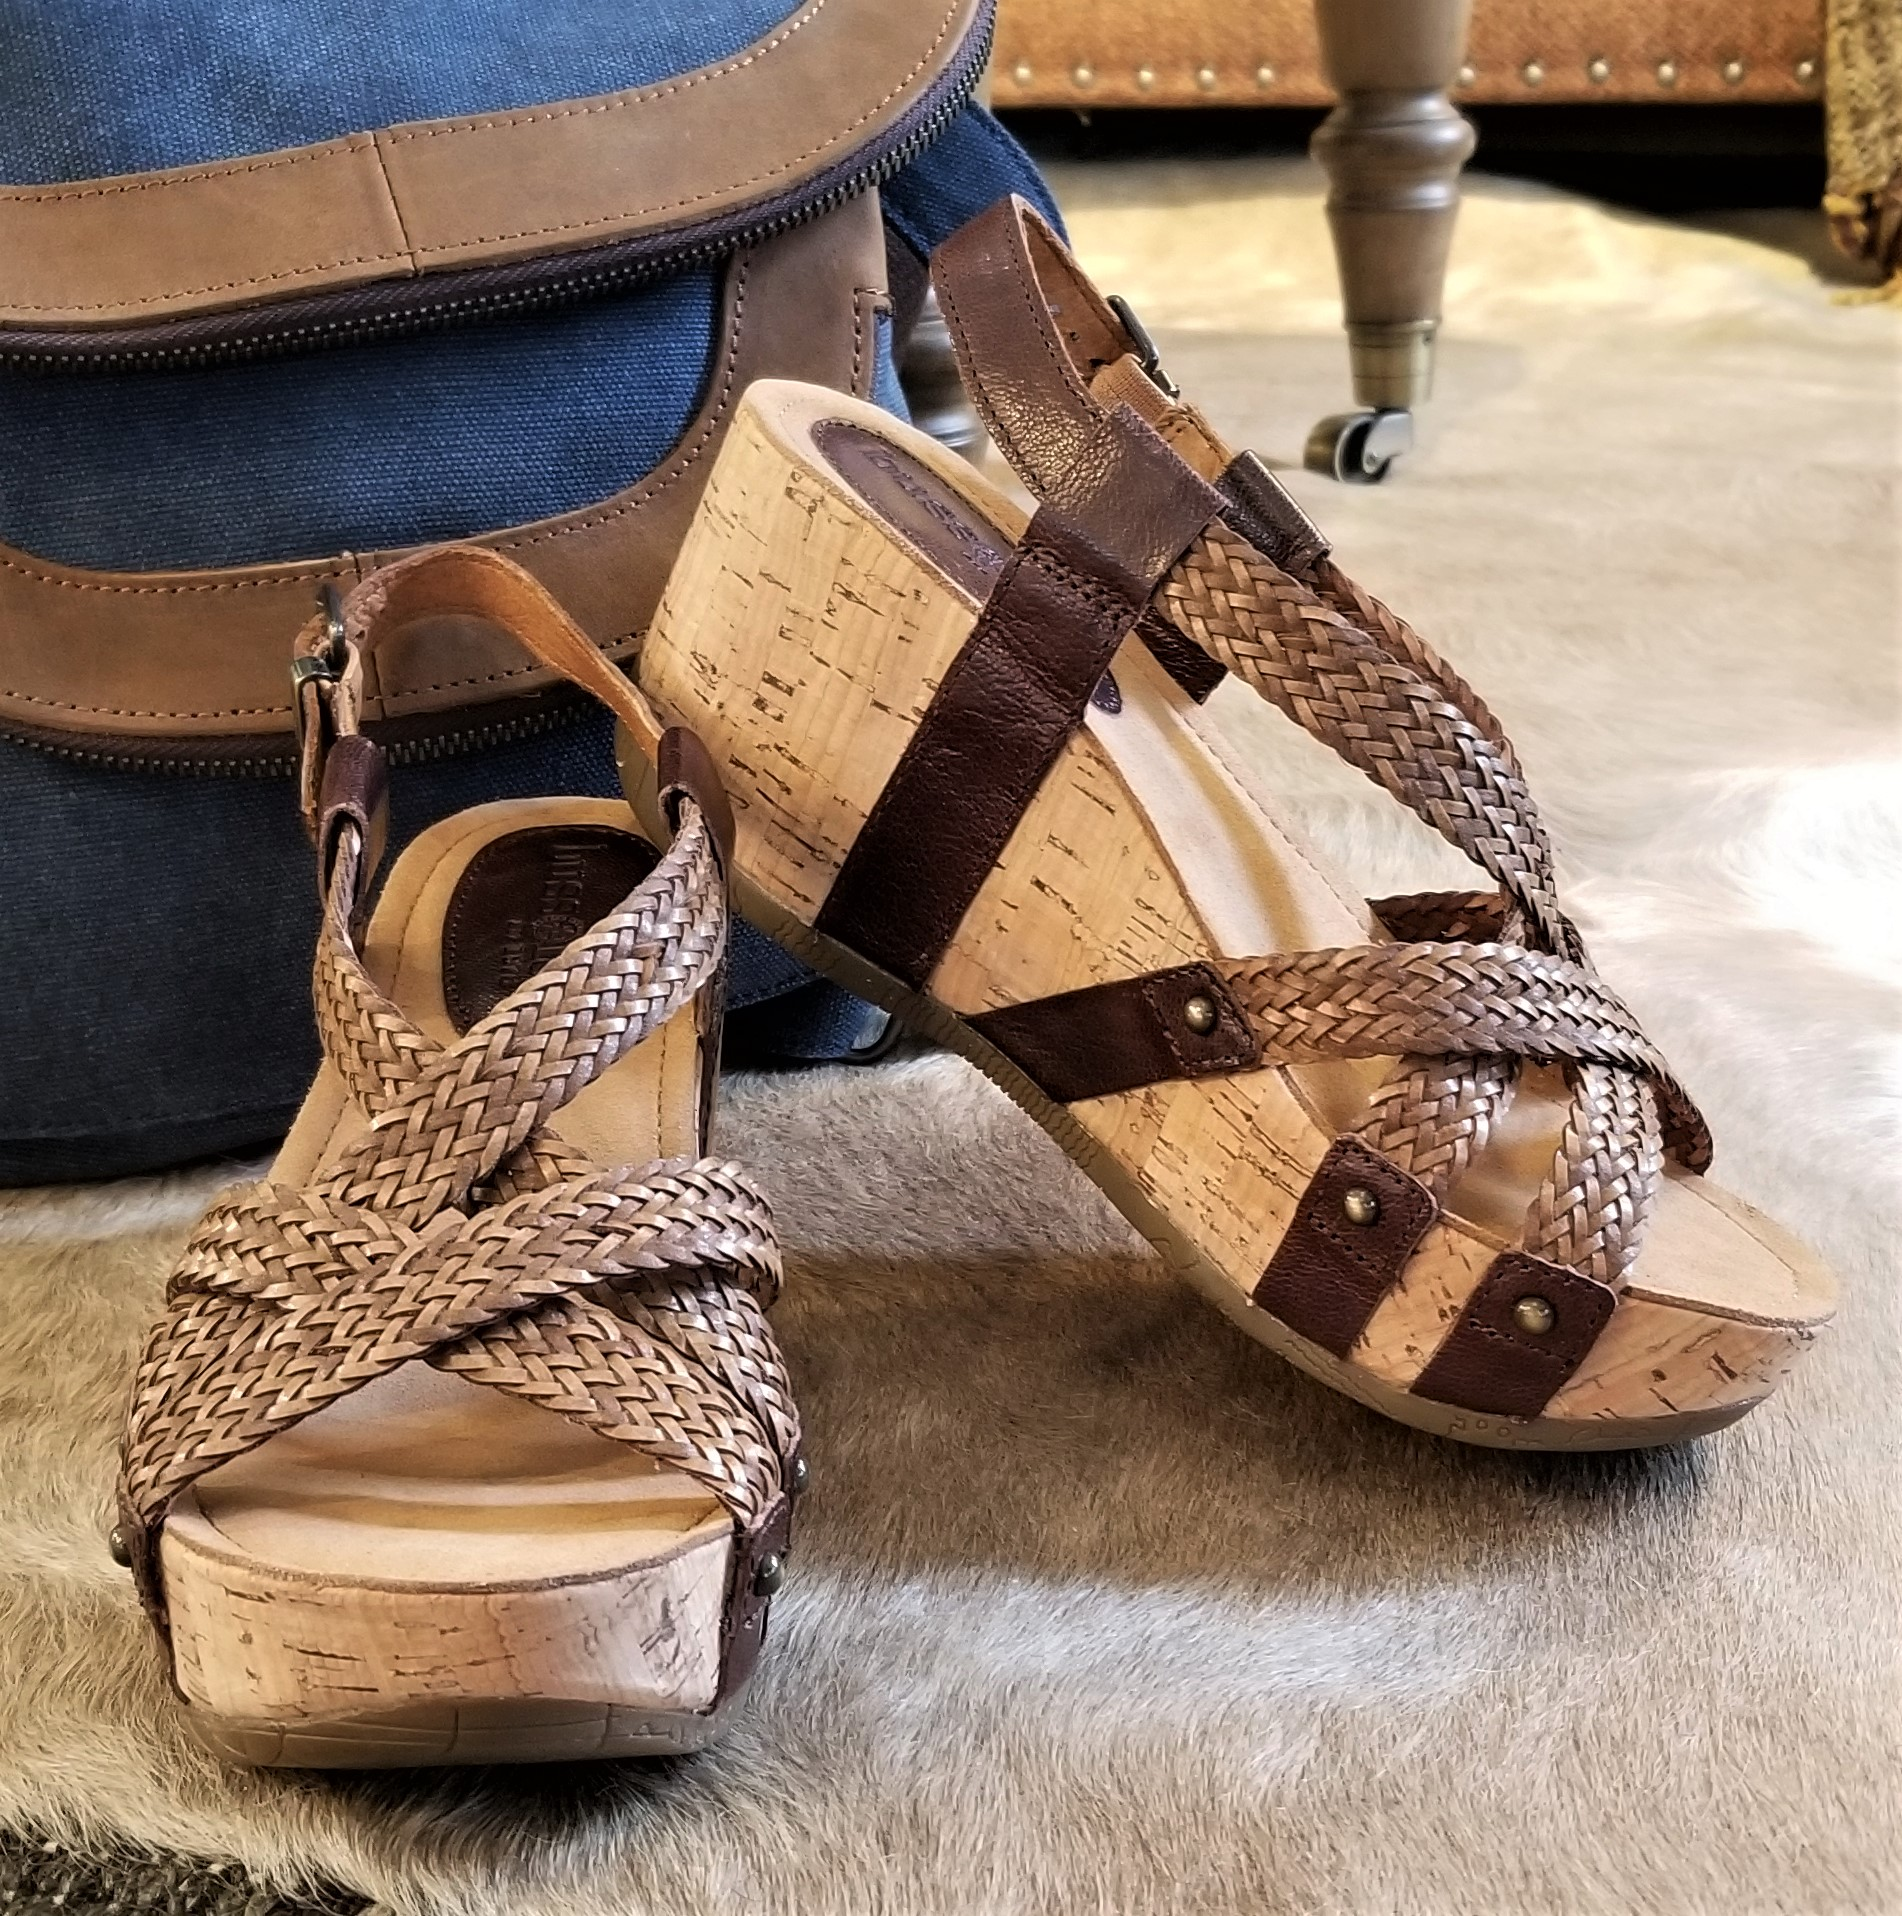 Fida in Zar Brown / Woven Brown by Bussola Style $104